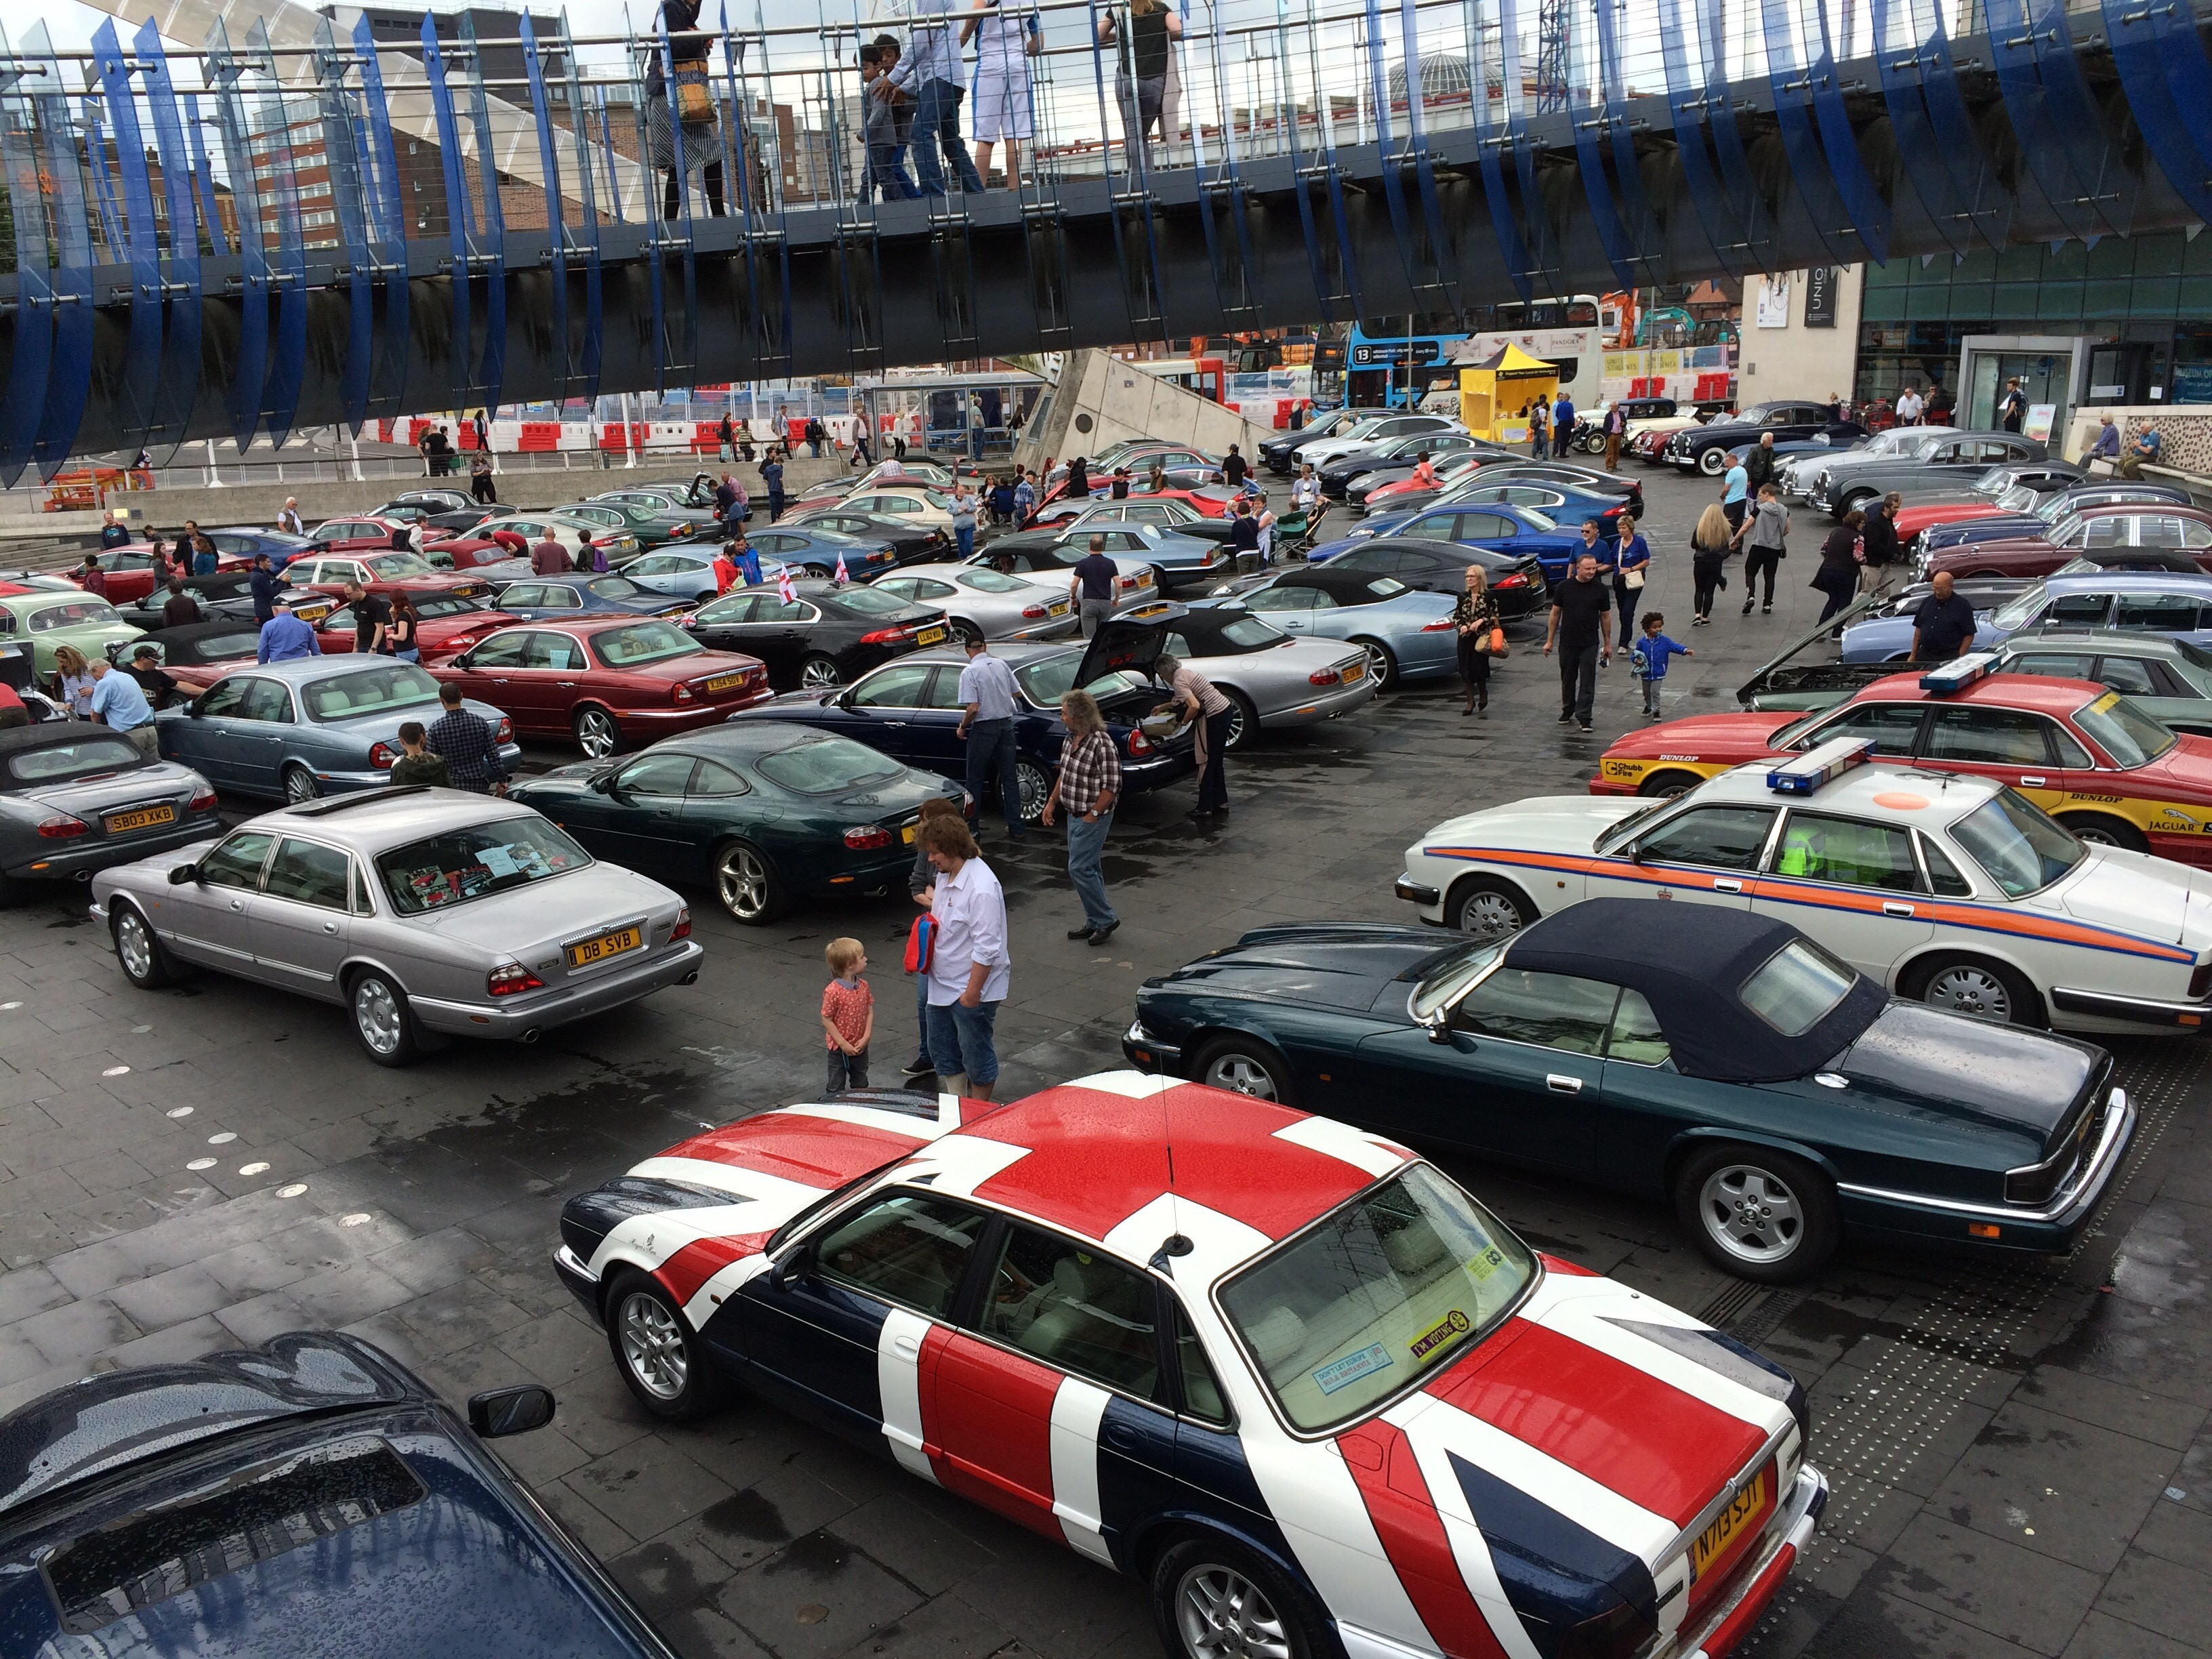 a display of Jaguar cars fills the space outside the Museum